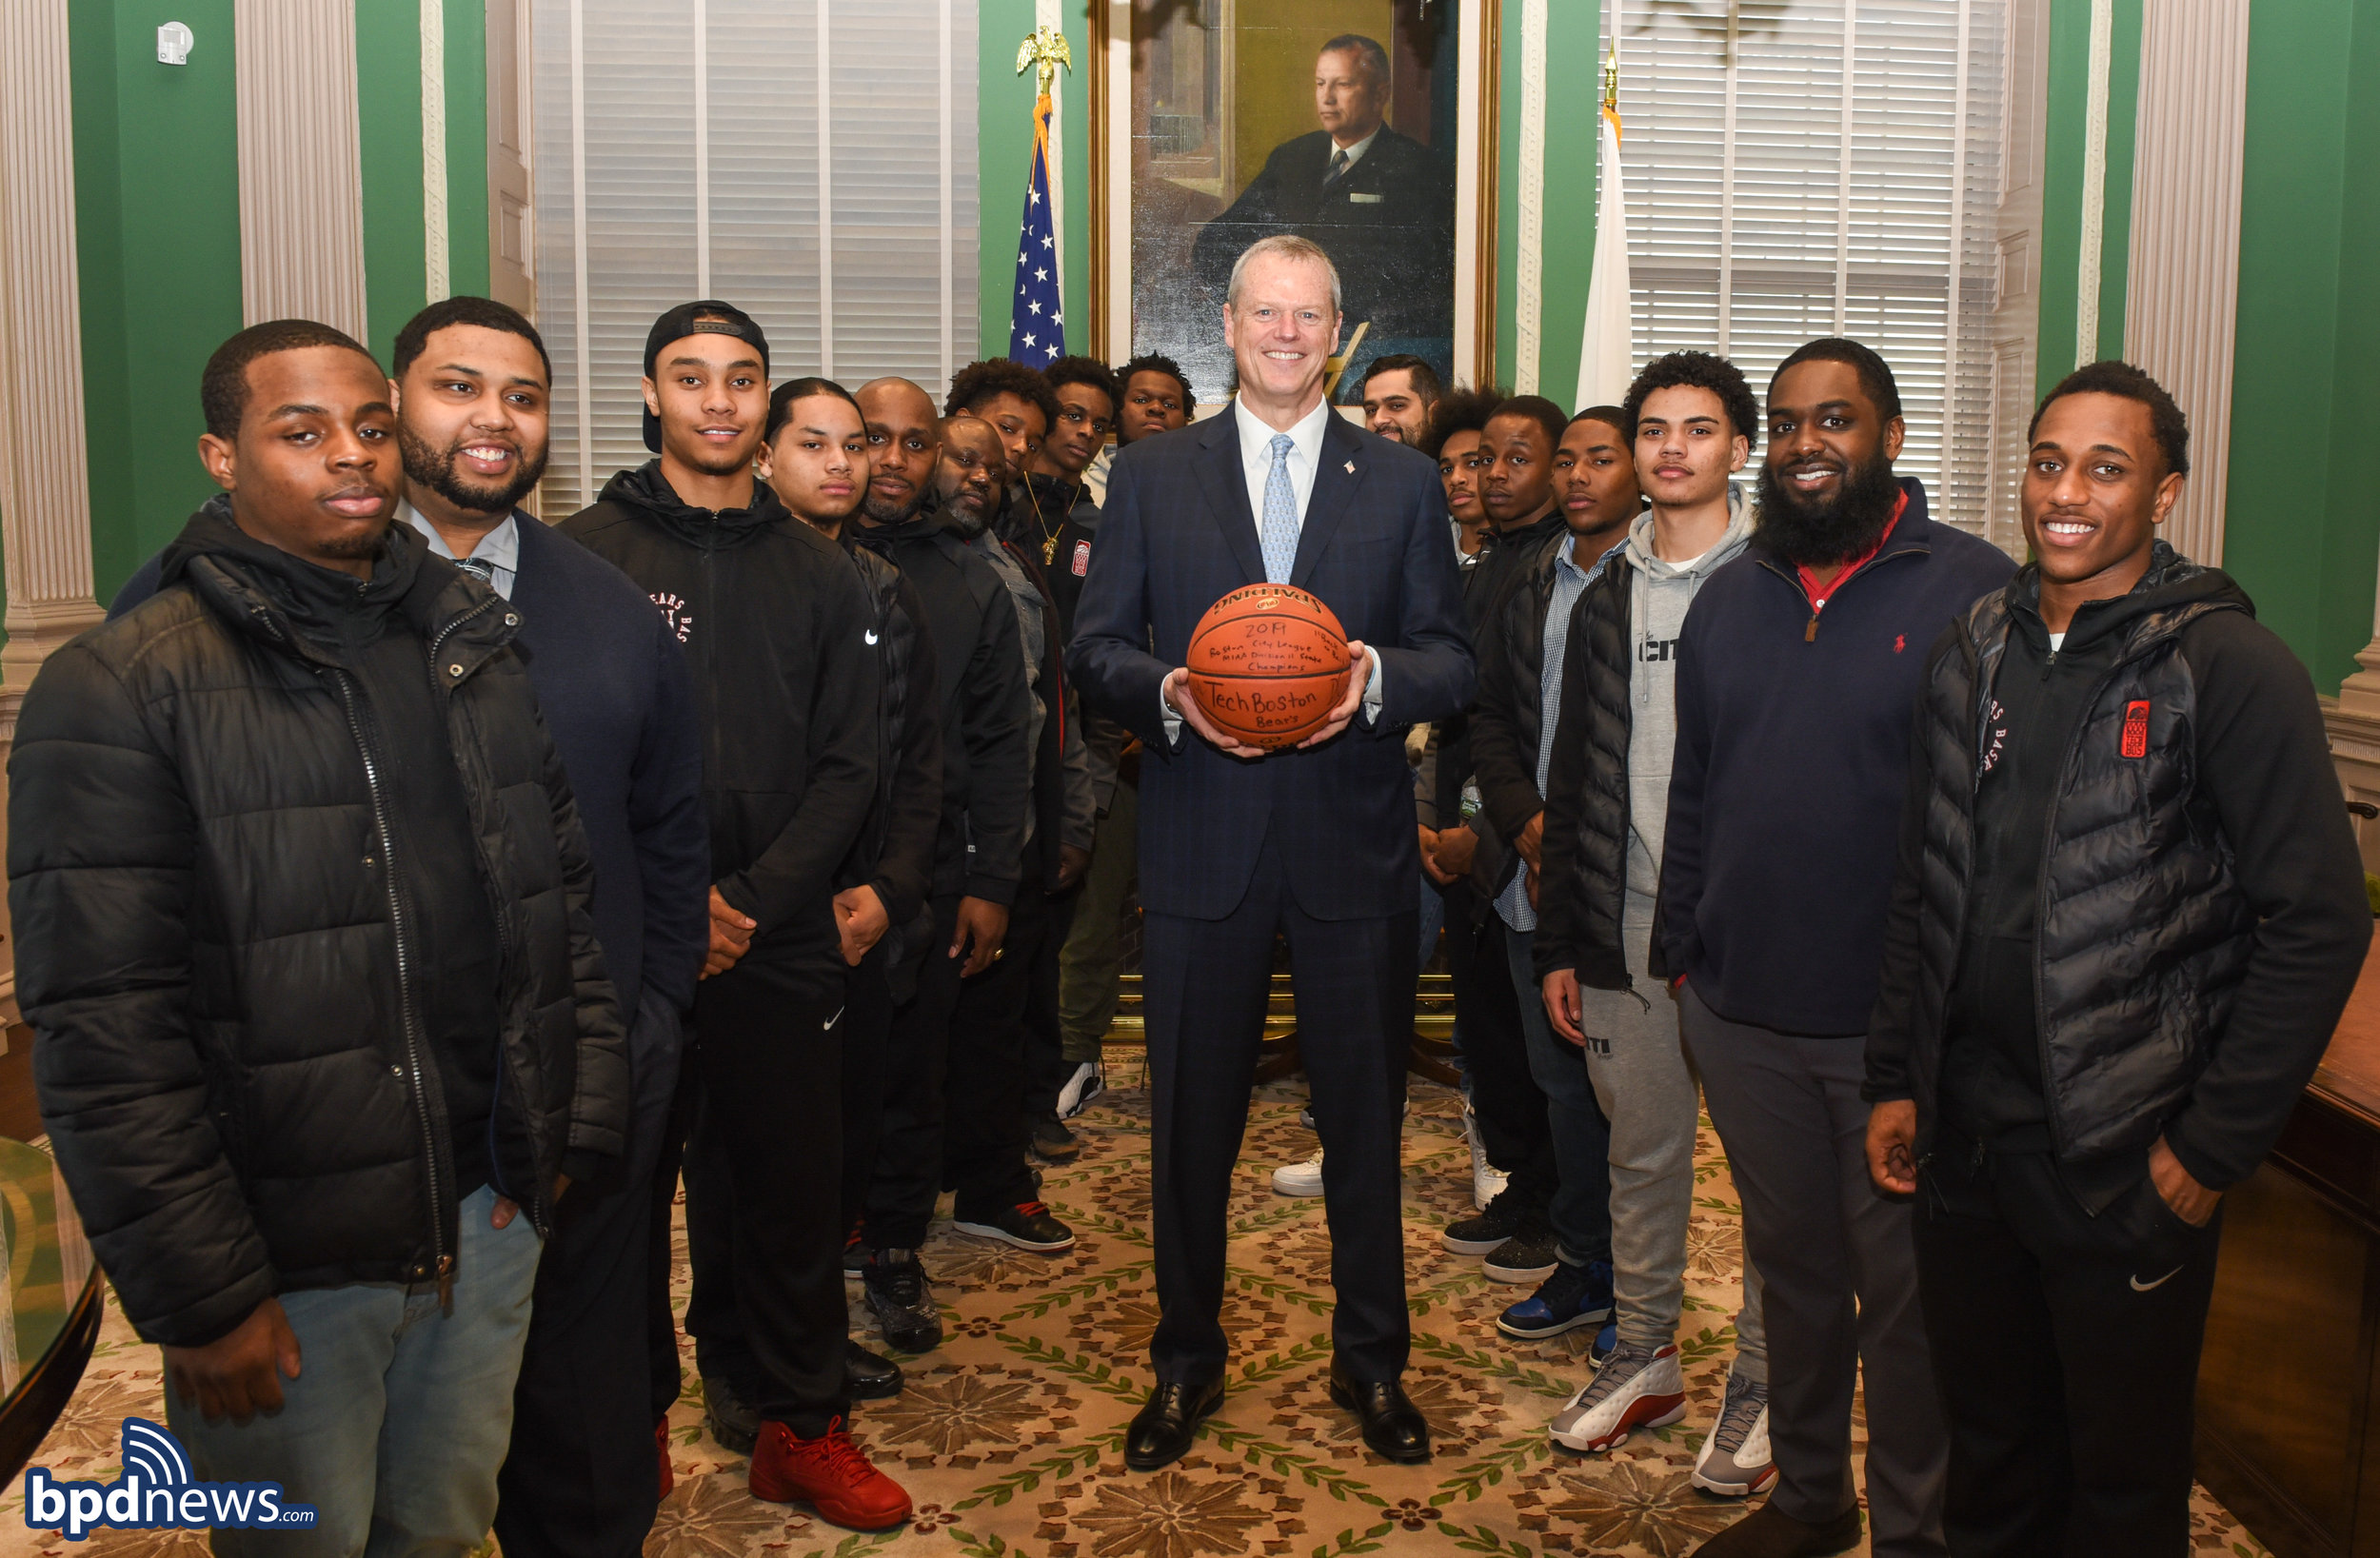 20190425 Basketball championship Team at the State House -10.jpg